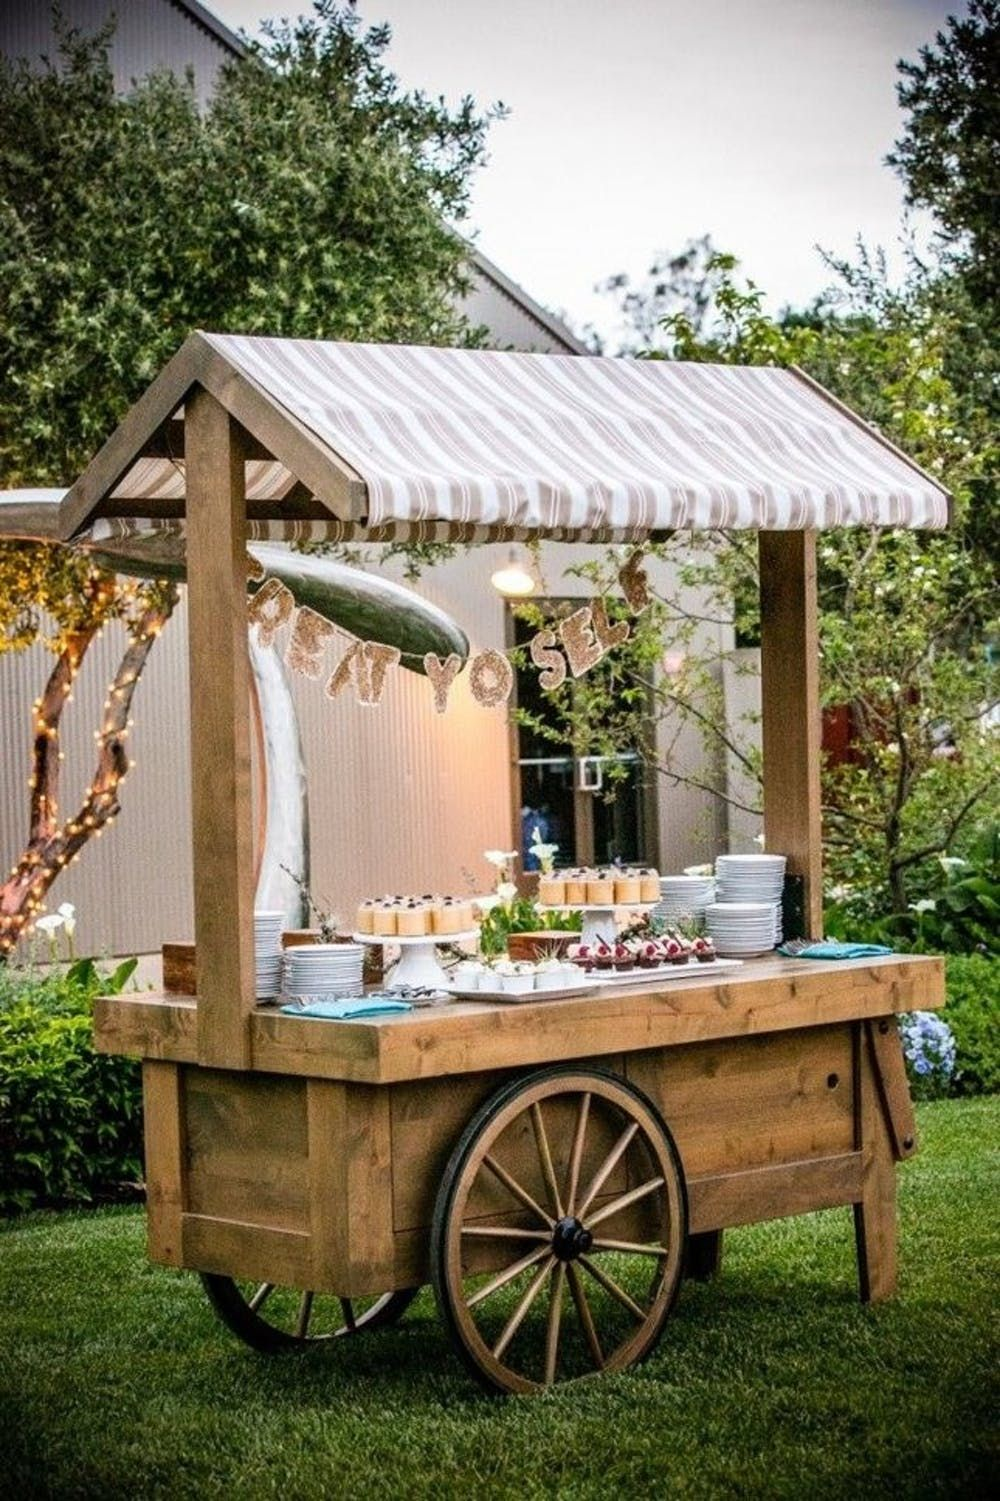 14 cocktail and food truck ideas for your wedding rustic